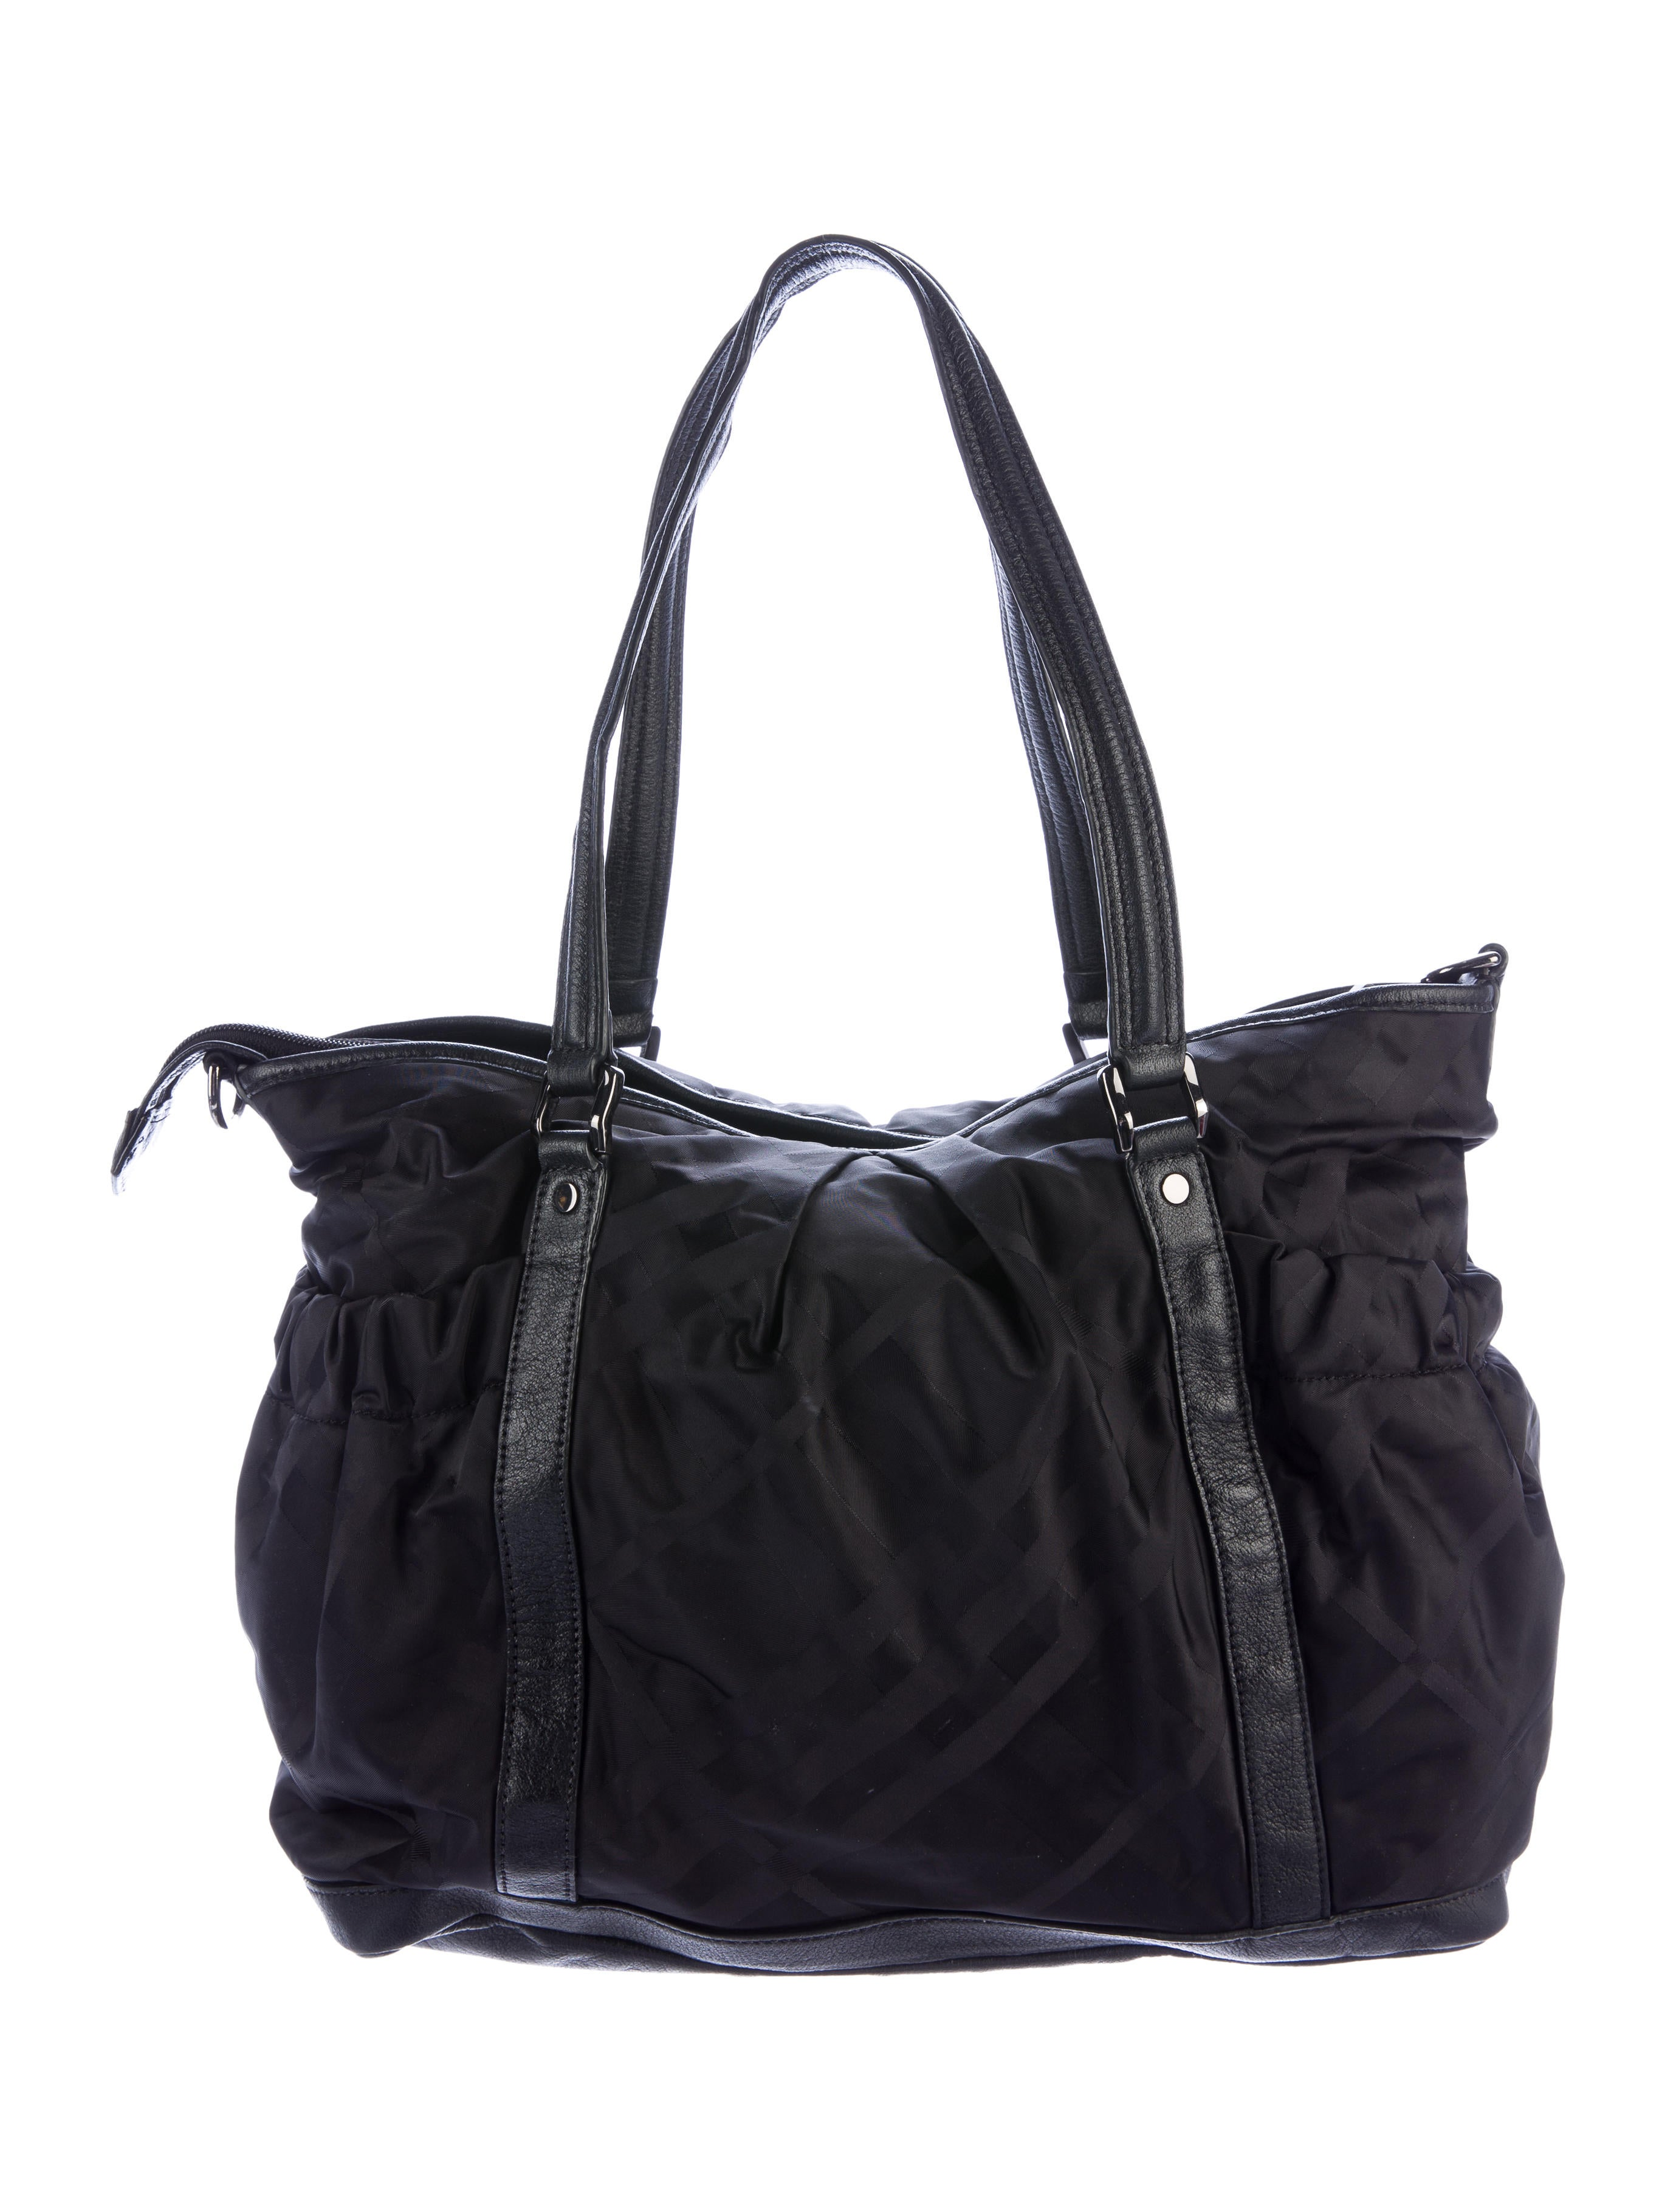 burberry leather trimmed diaper bag handbags bur70606 the realreal. Black Bedroom Furniture Sets. Home Design Ideas